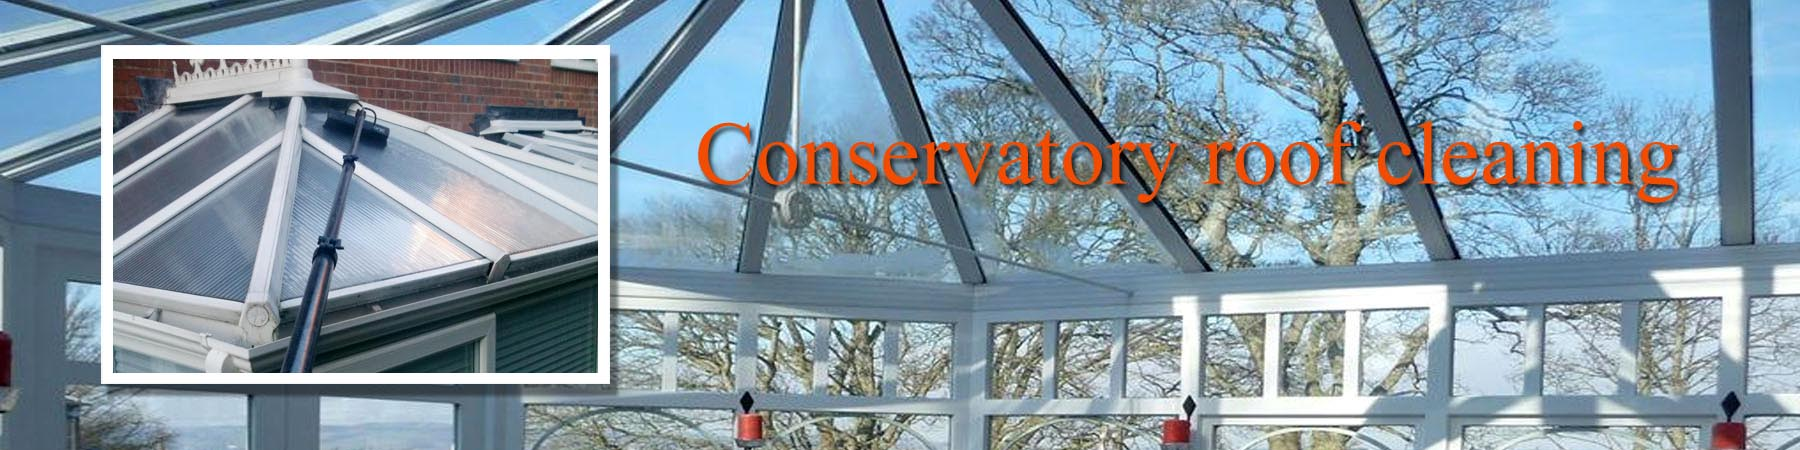 Conservatory roof cleaning Rochester